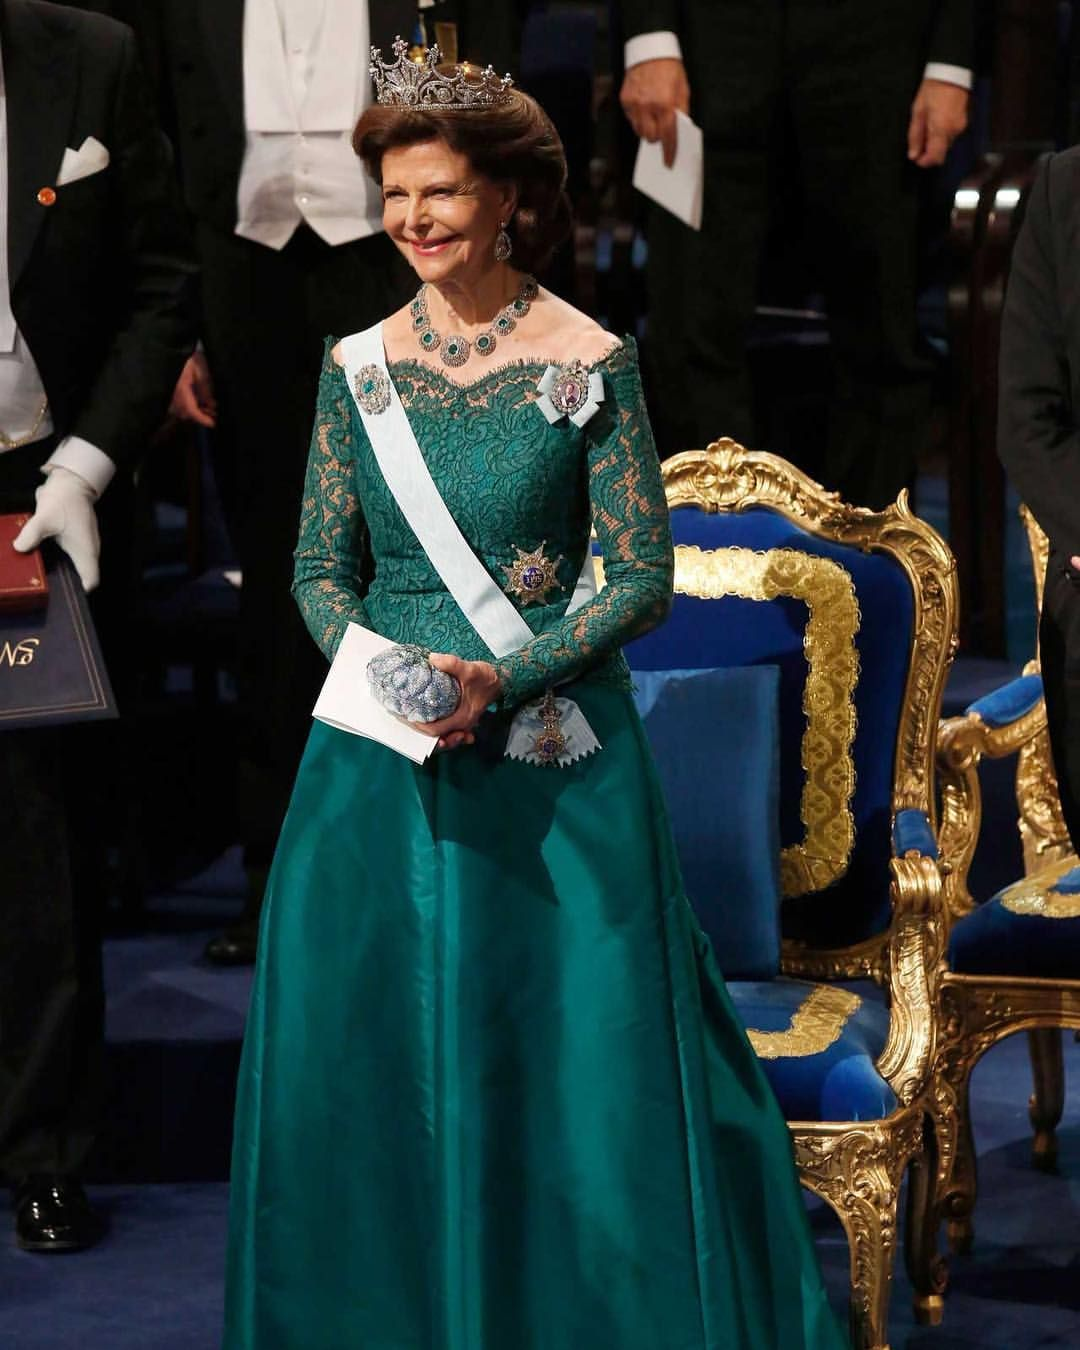 Queen Silvia Chose A Long Emerald Green Gown With Lace Applications By The German Designers Georg Et Arend She Has Previou Royal Gowns Gala Gowns Green Dress [ 1350 x 1080 Pixel ]